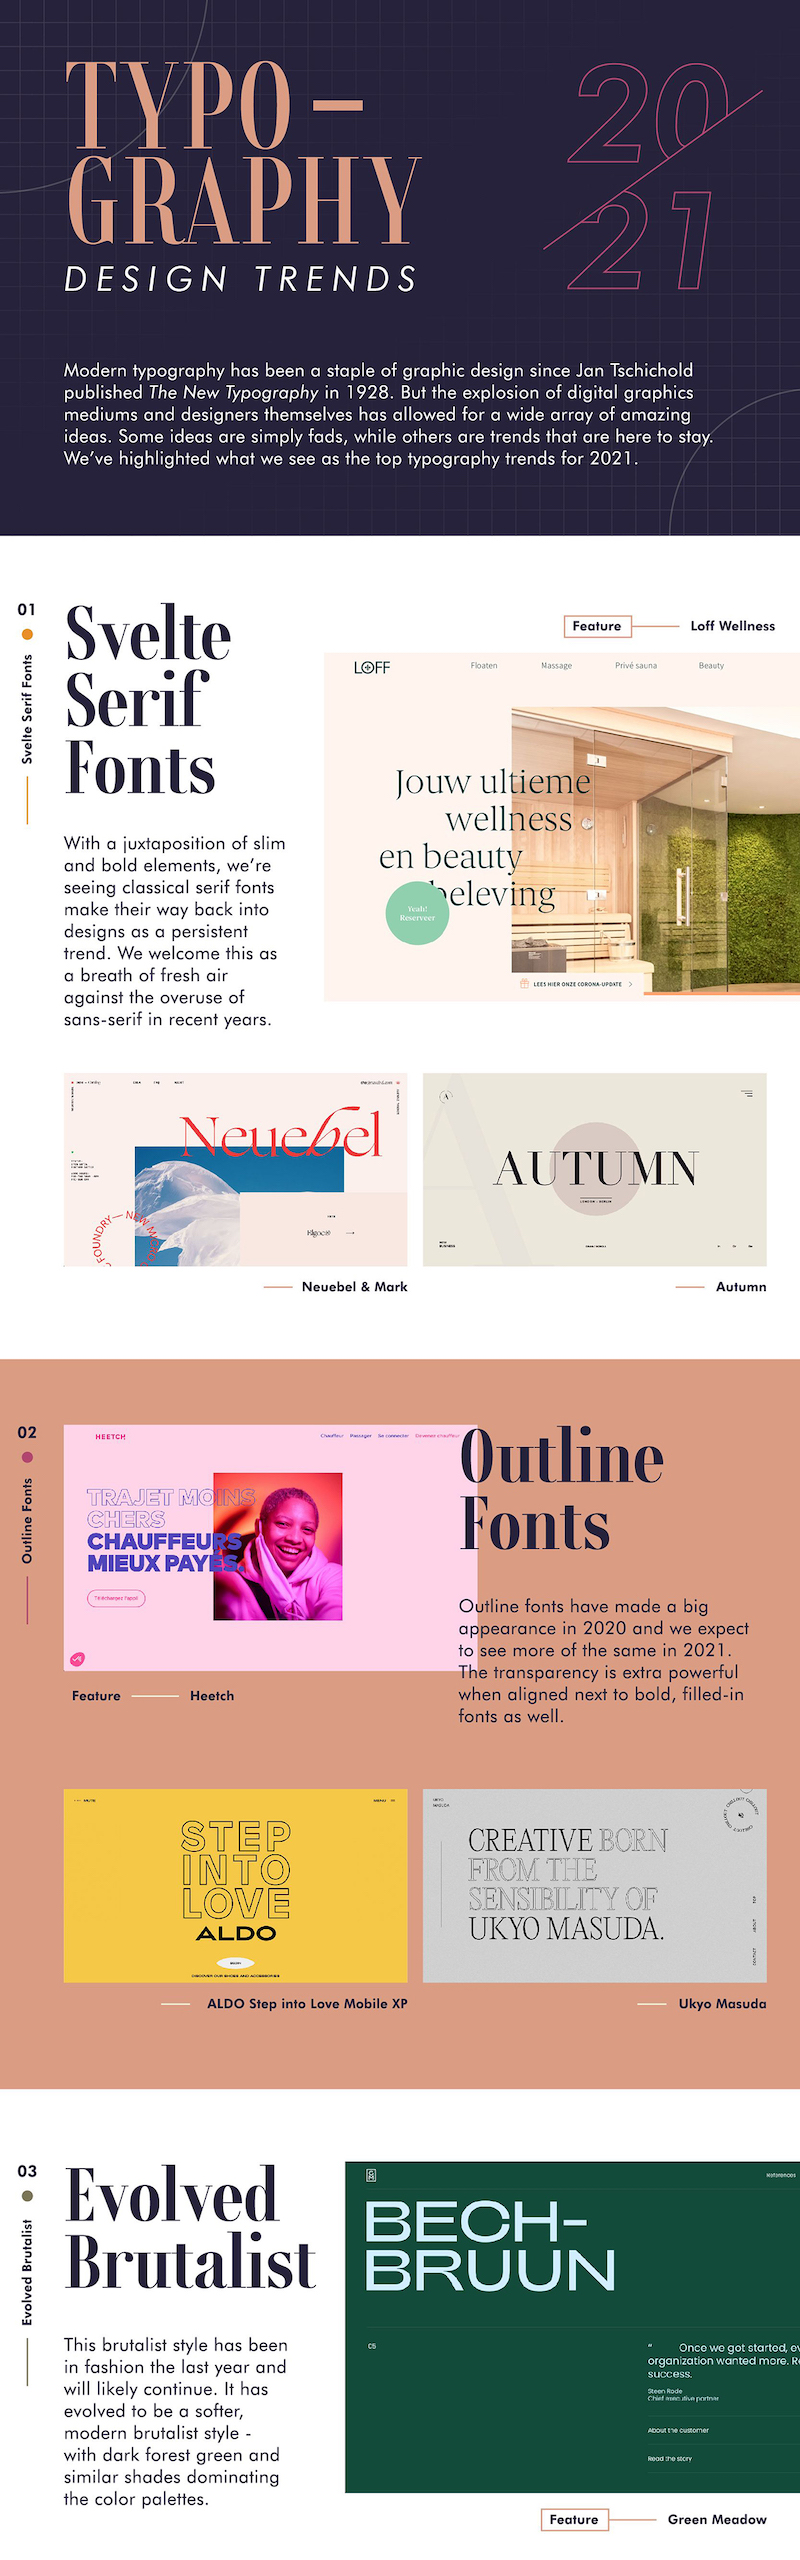 An infographic example showcasing top typography trends.